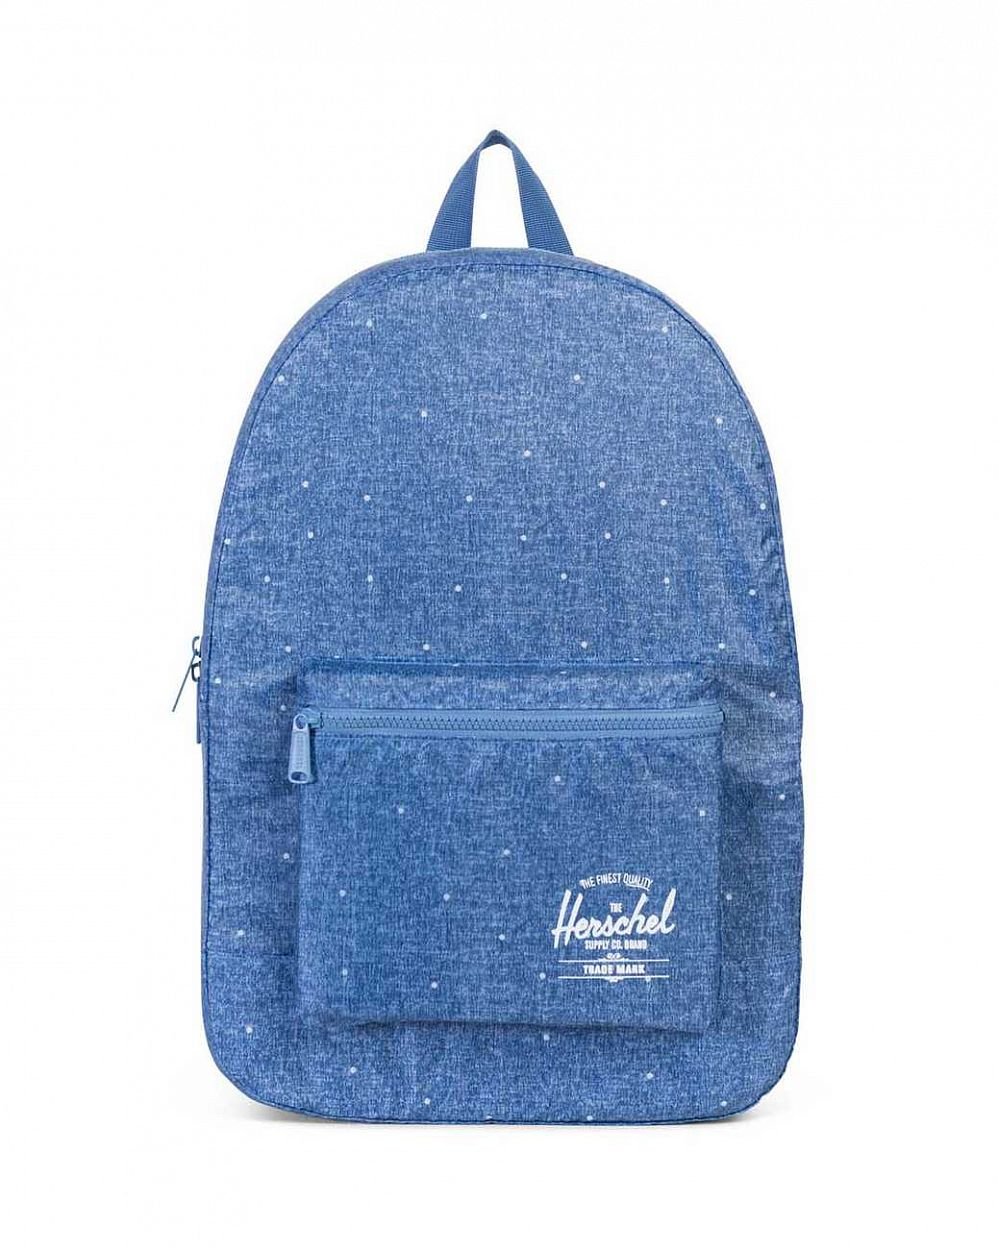 Рюкзак складной Herschel Packable Daypack LIMOGES CROSSHATCH отзывы